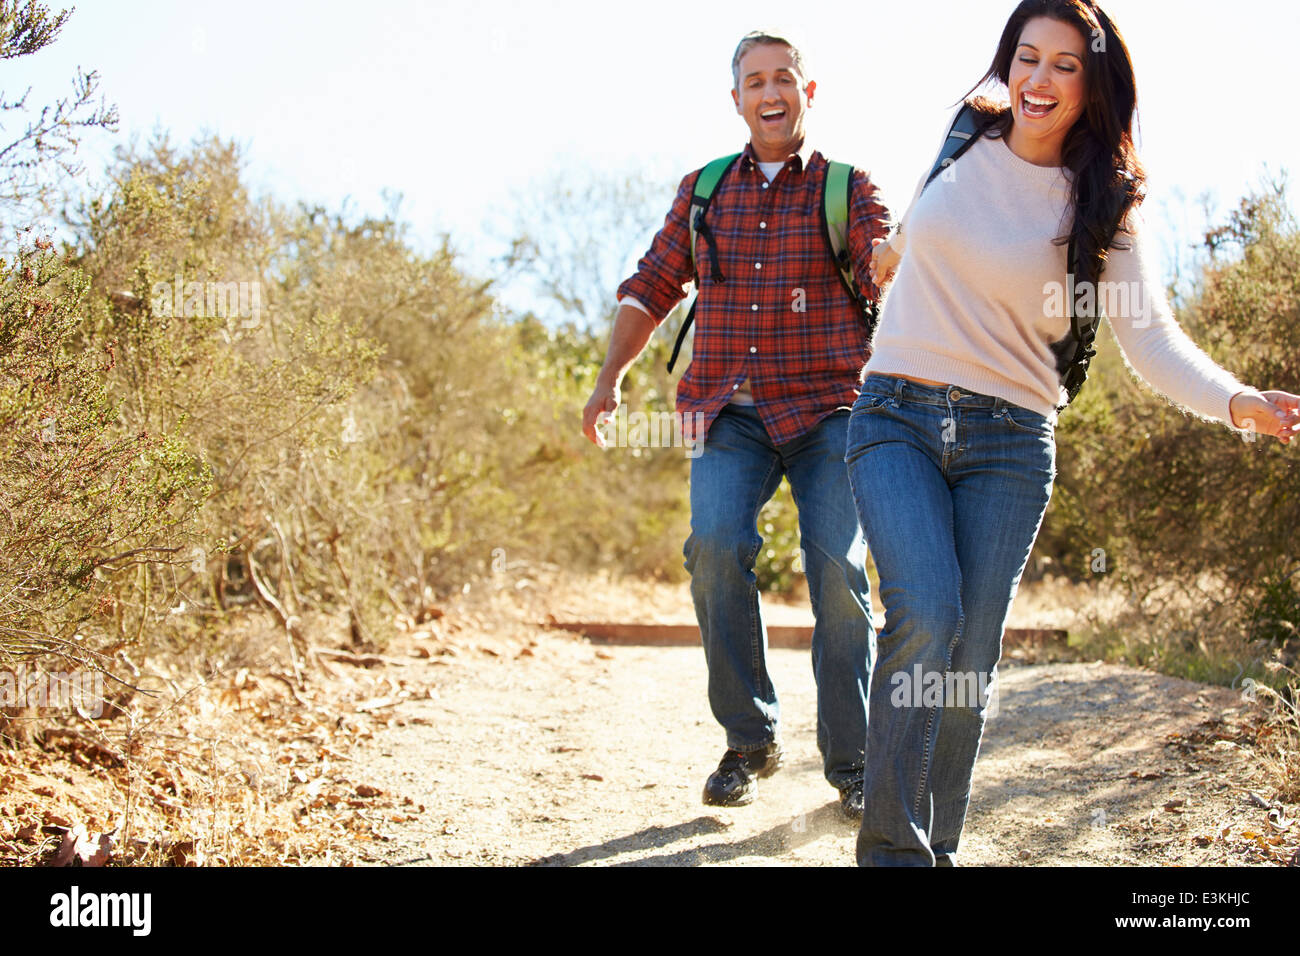 Couple Hiking In Countryside Wearing Backpacks - Stock Image